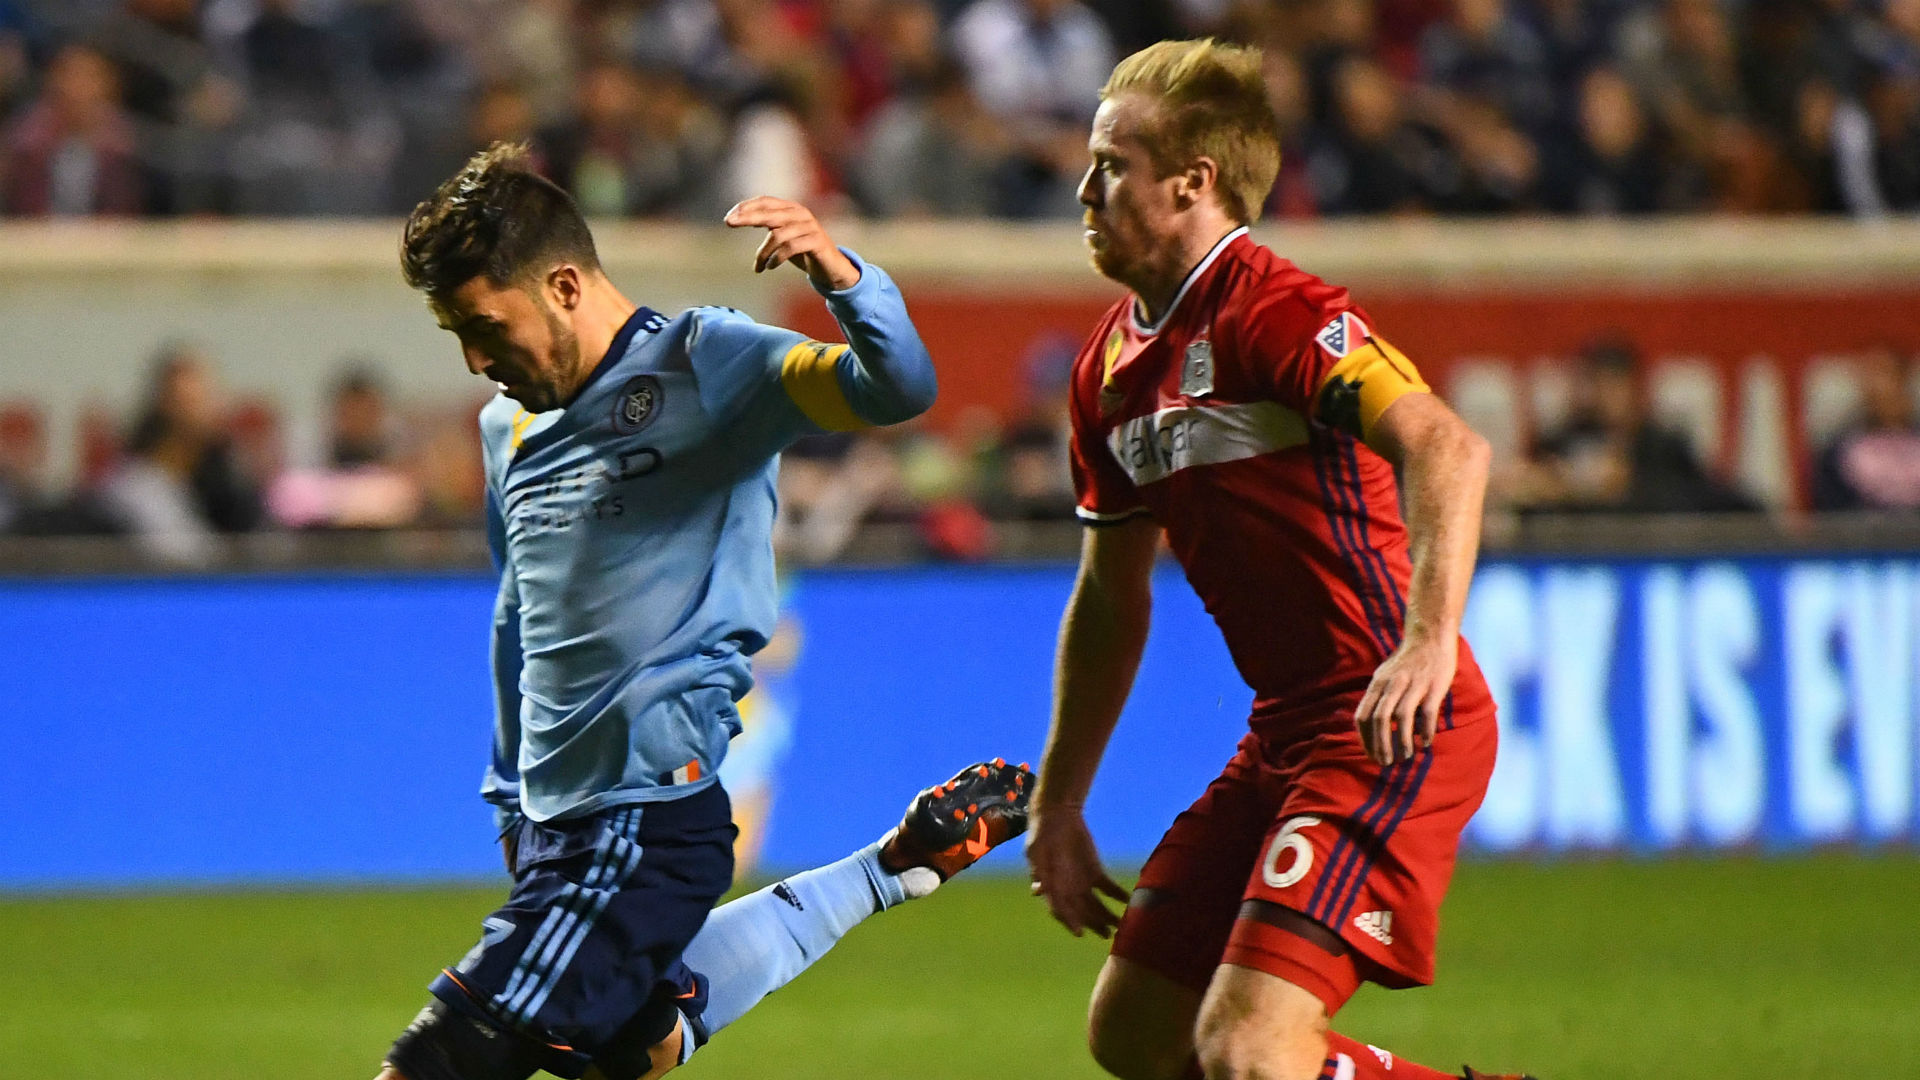 David-villa-dax-mccarty-new-york-city-fc-chicago-fire-mls_vamedcgi80i31de5hhfgzke52